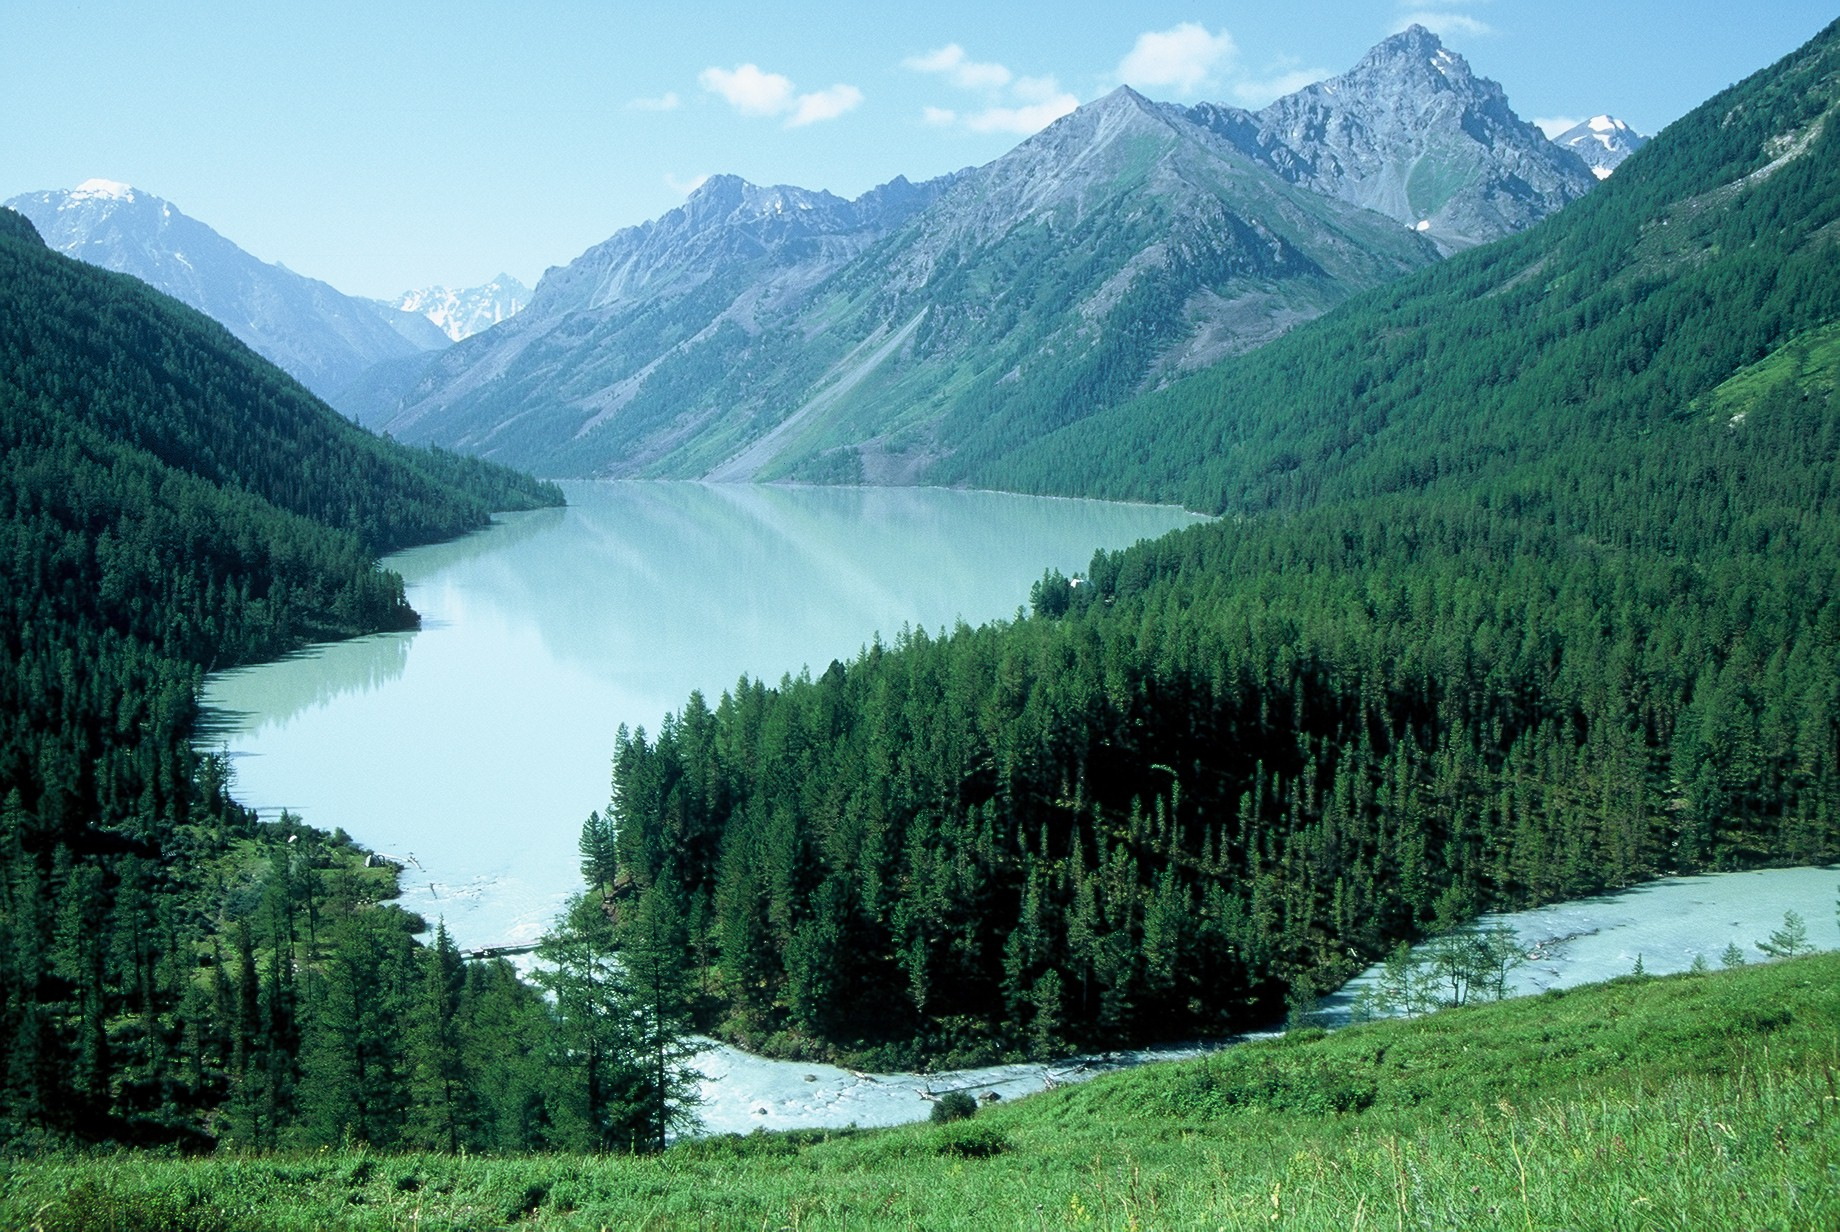 Altai mountains in Siberia